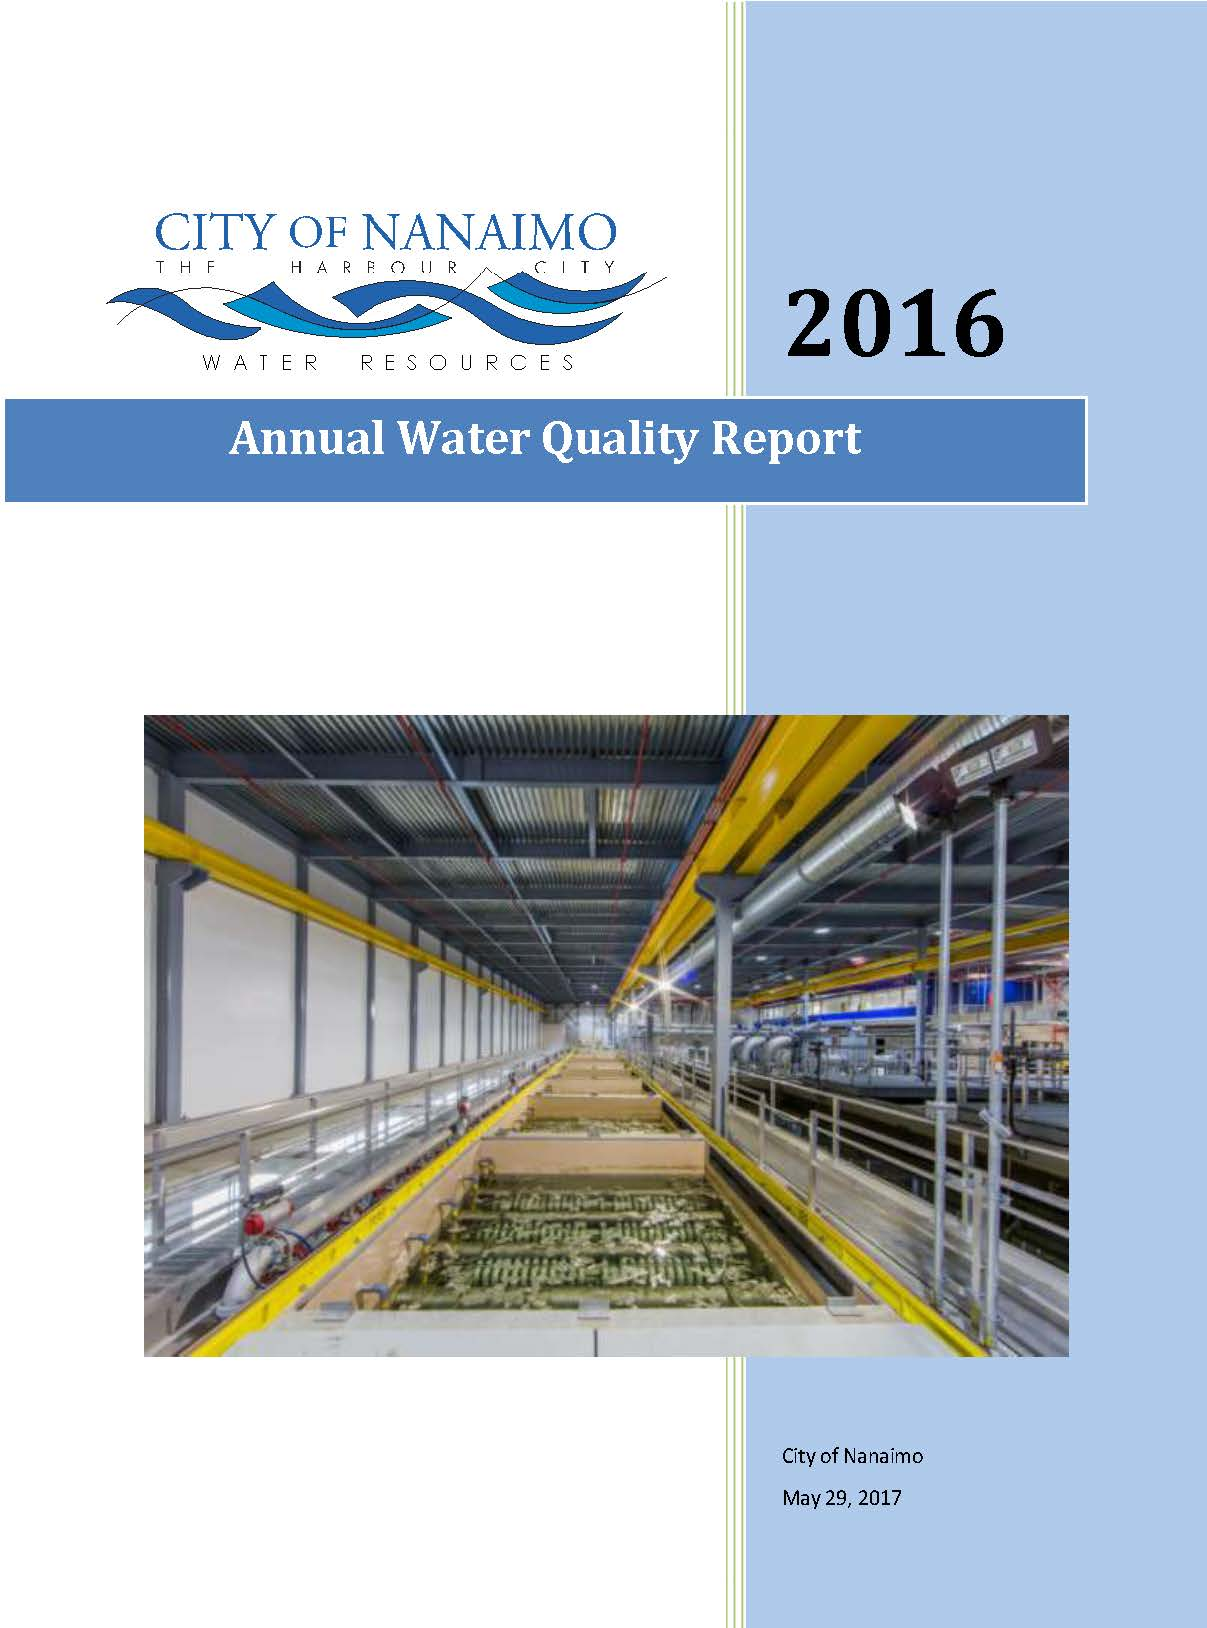 Annual Water Quality Report 2016 front cover